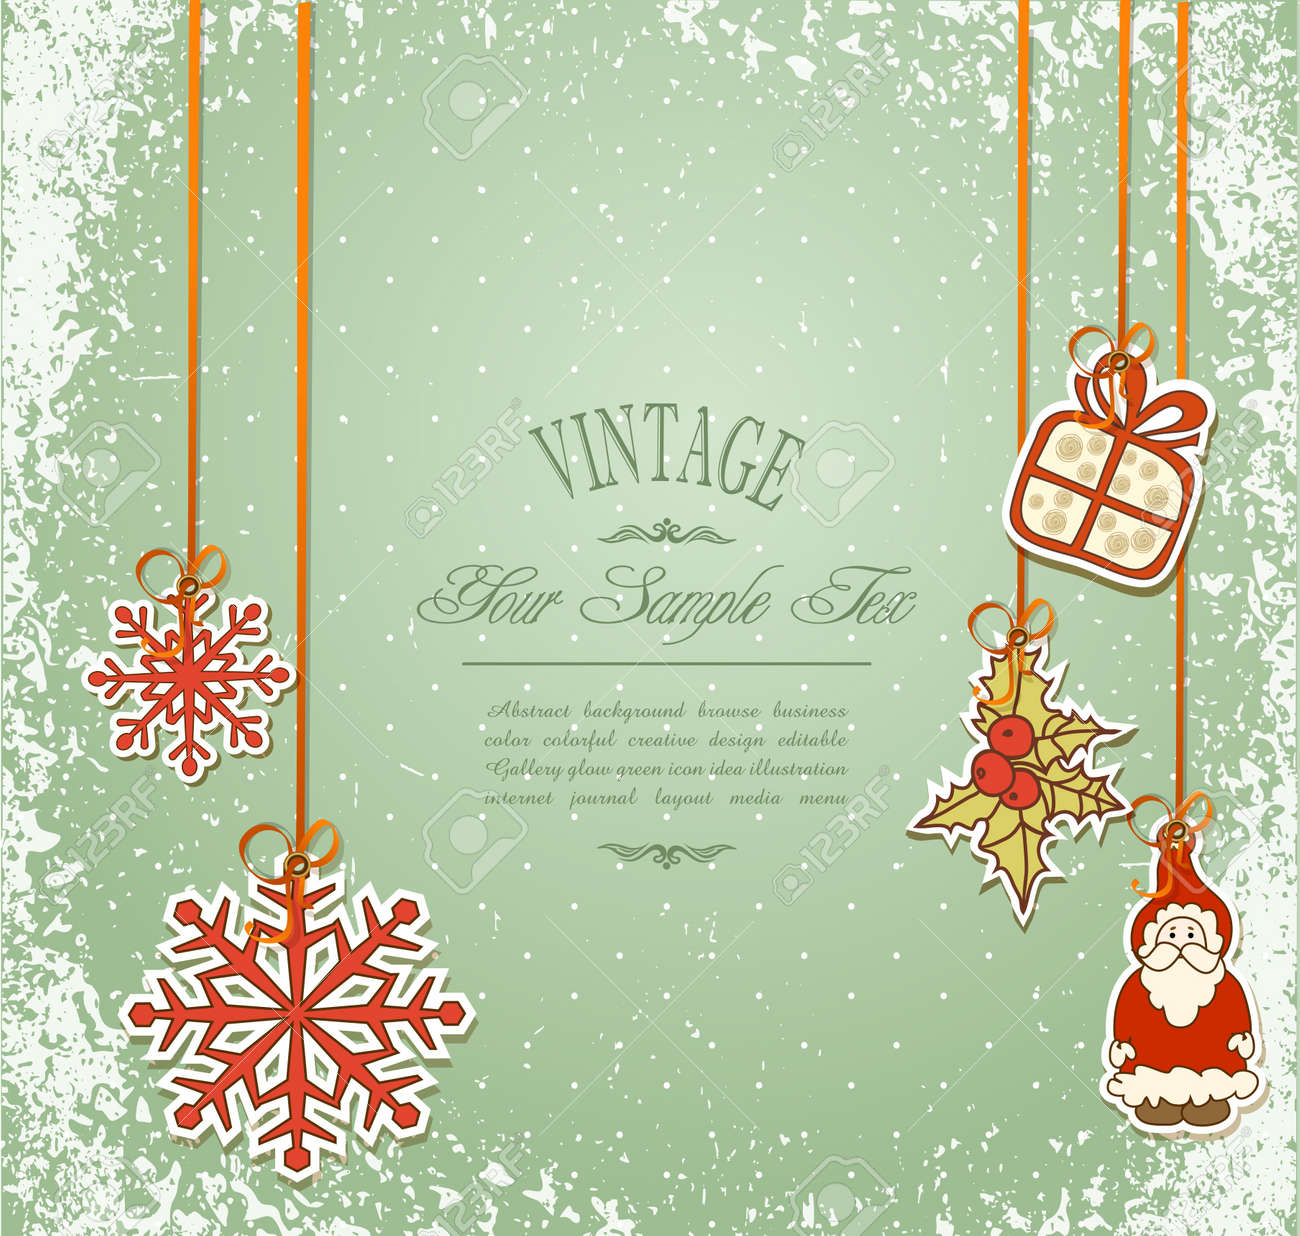 Vintage, grungy New Year, Christmas background Stock Vector - 10422038